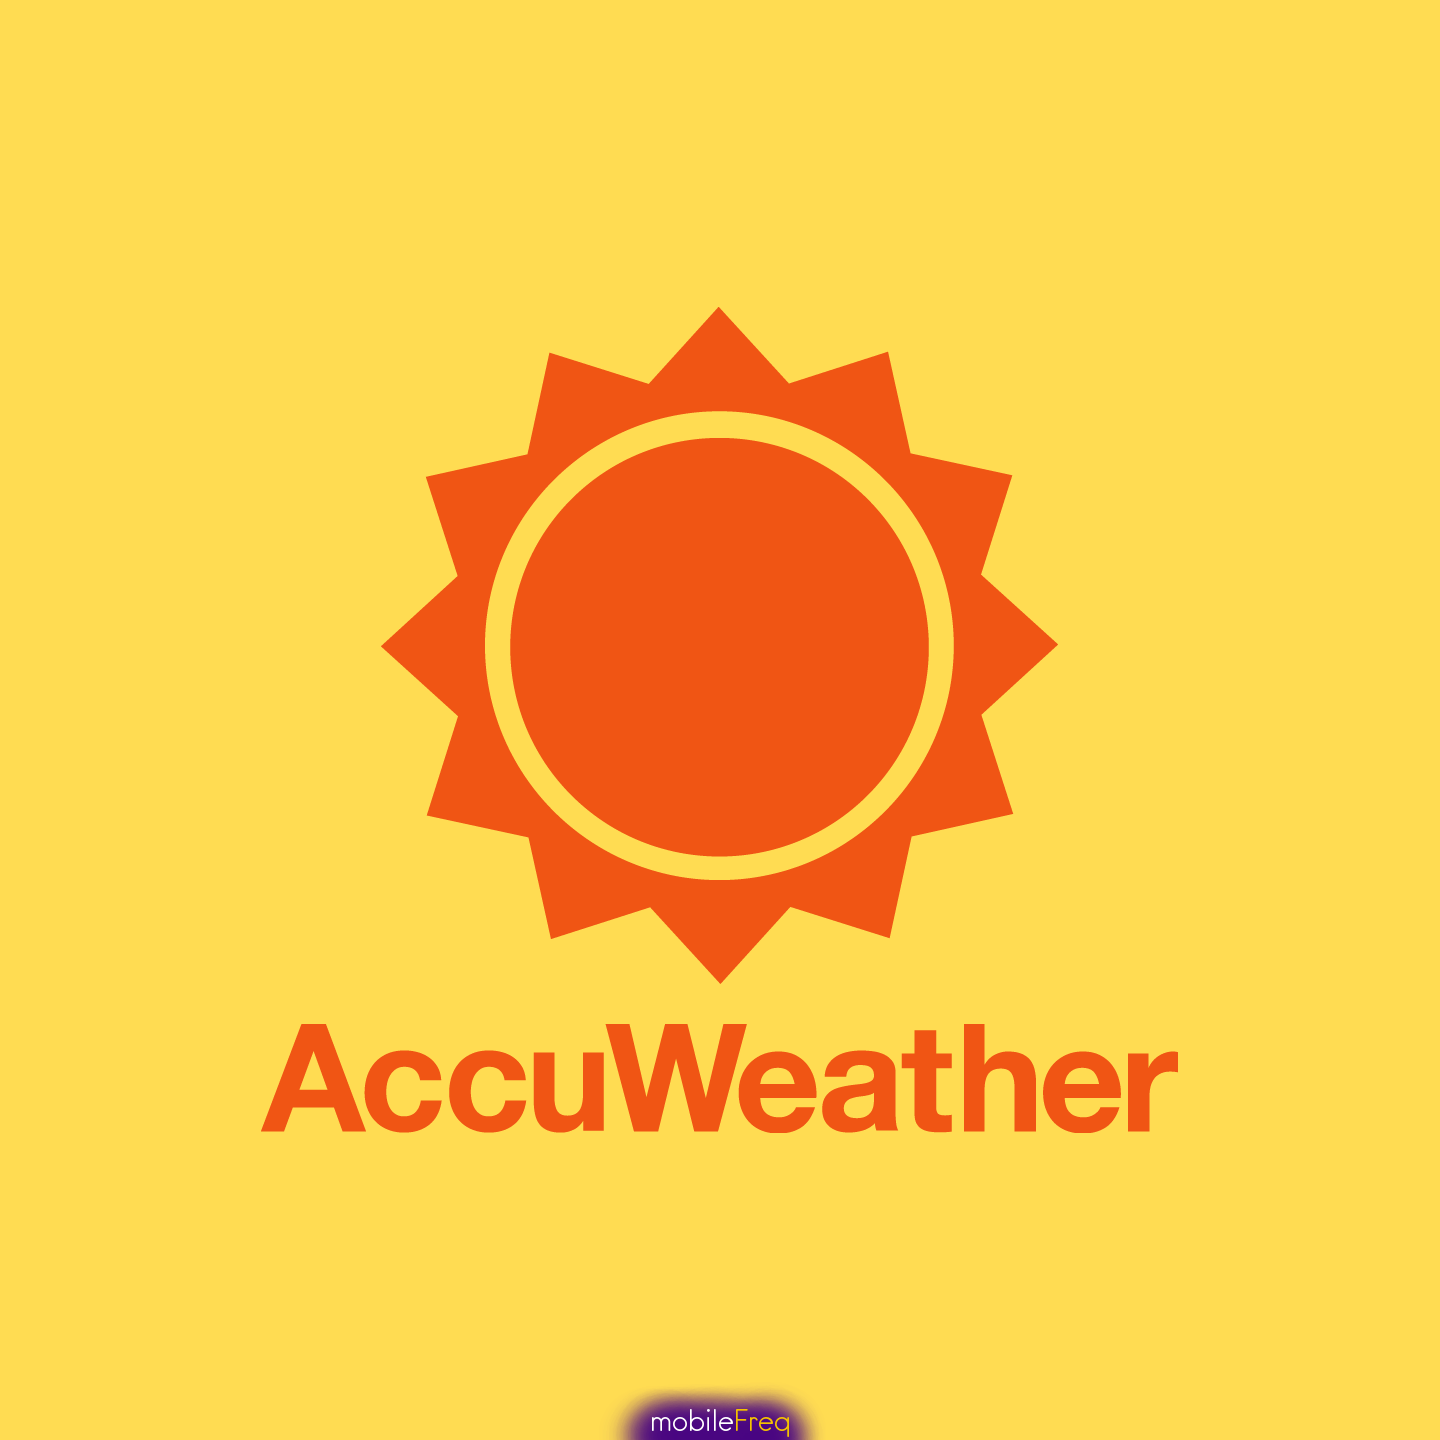 accuweather tappday review